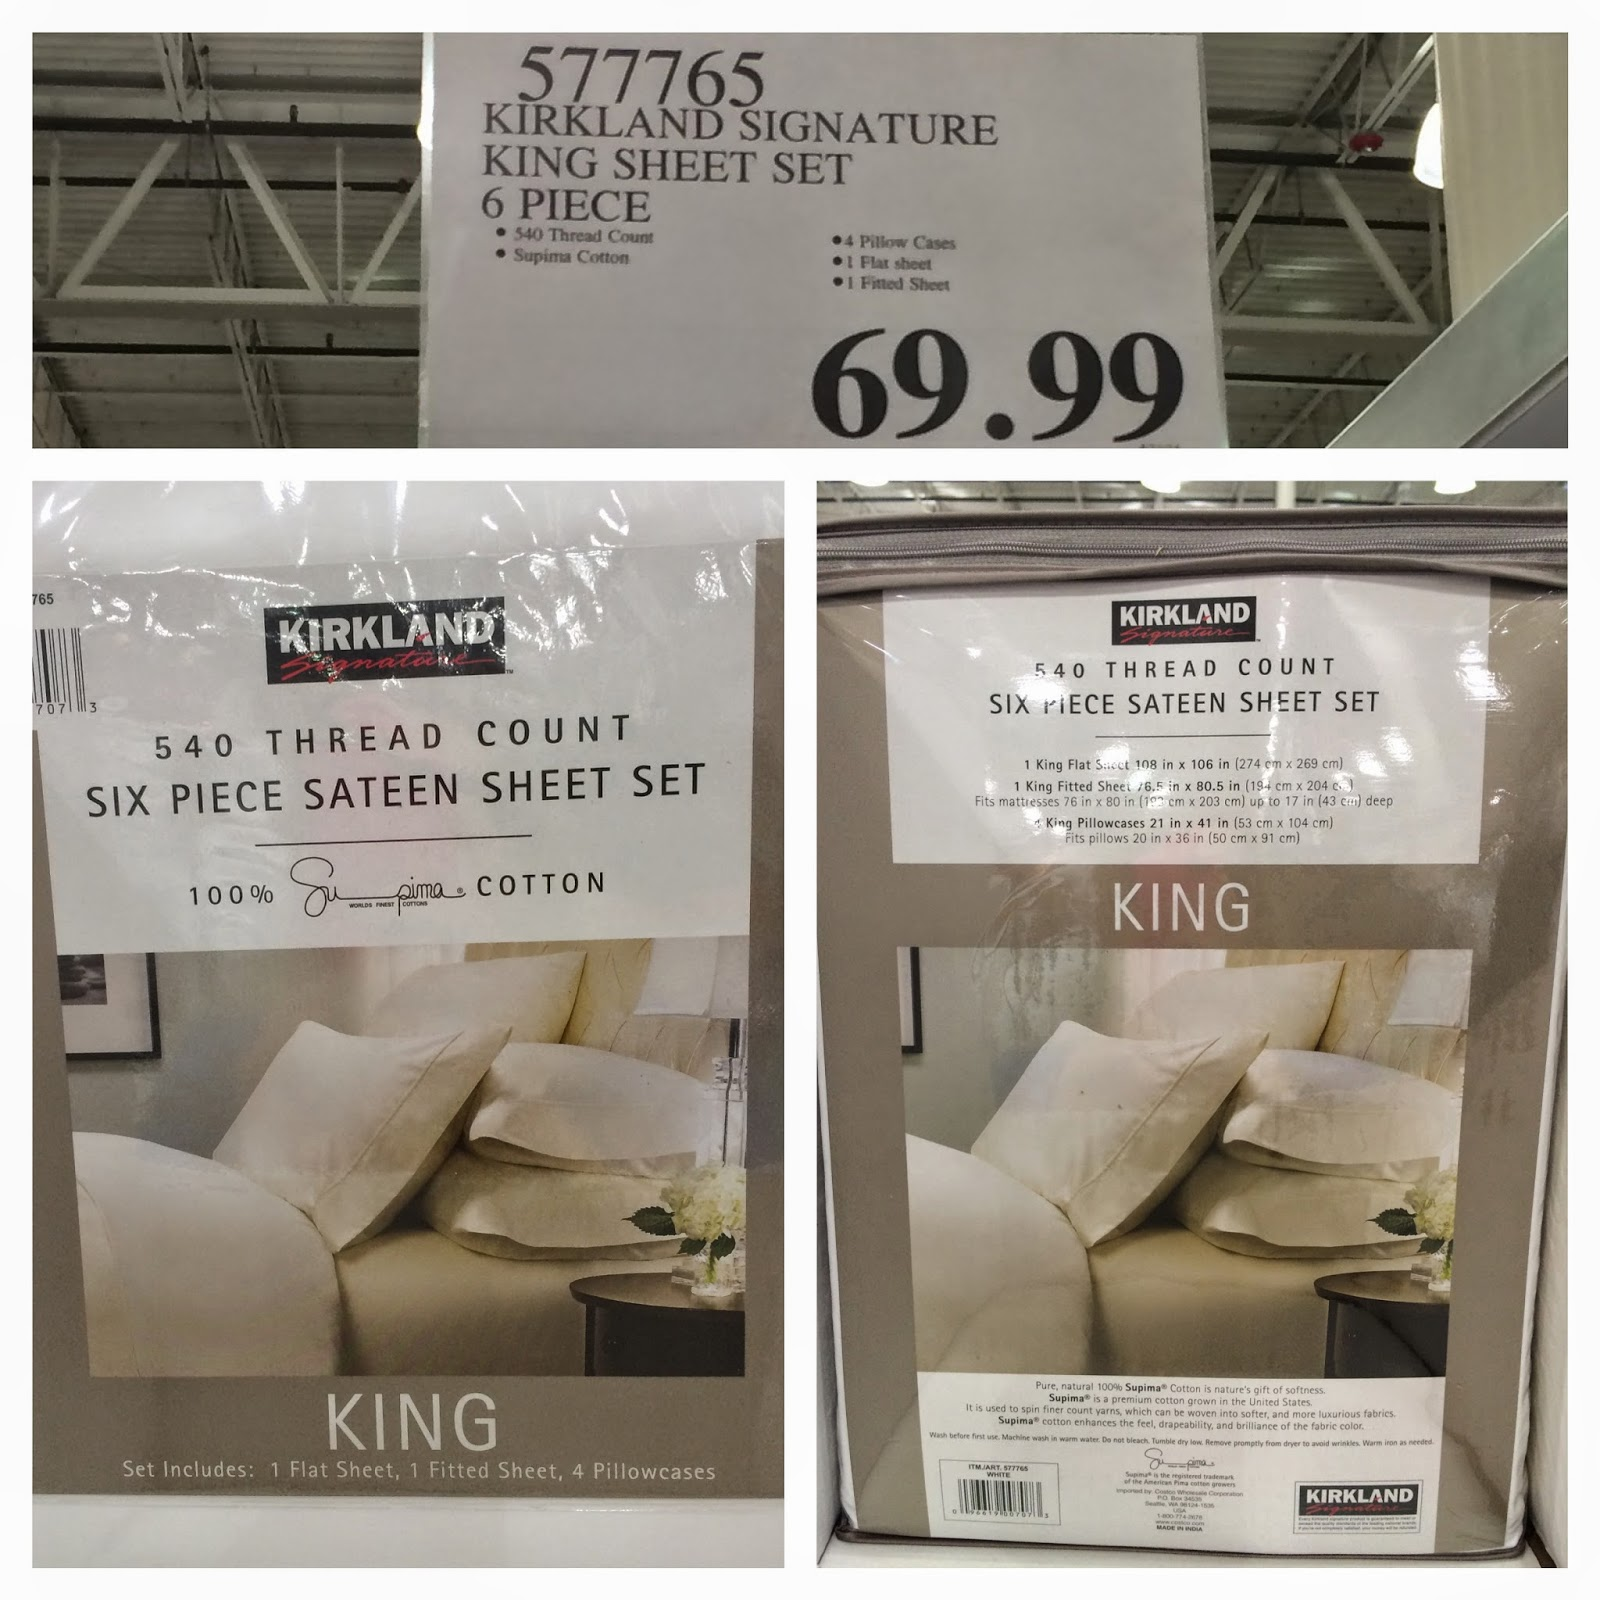 the costco connoisseur: kirkland signaturecostco is lacking in